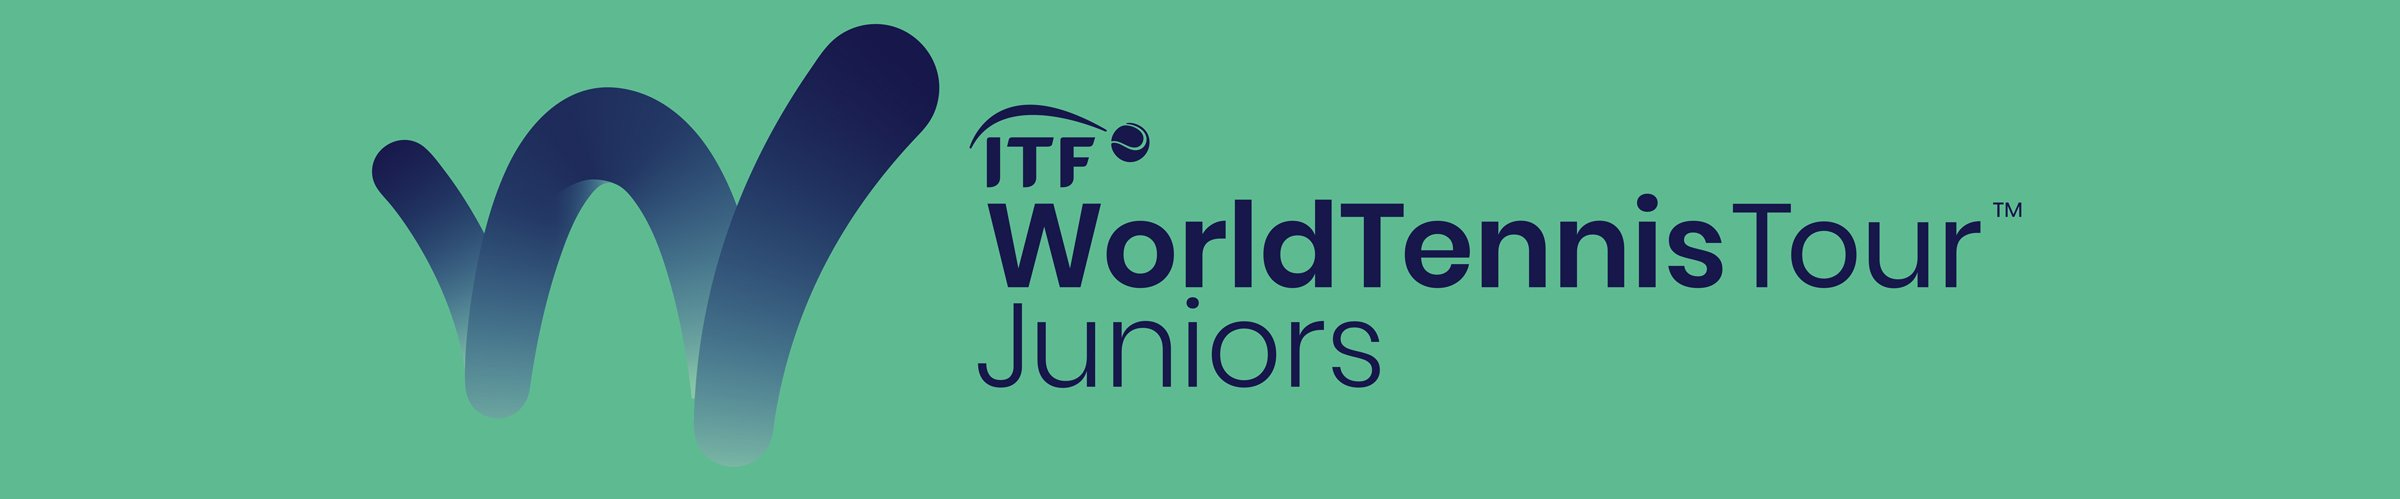 ITF WTT Juniors